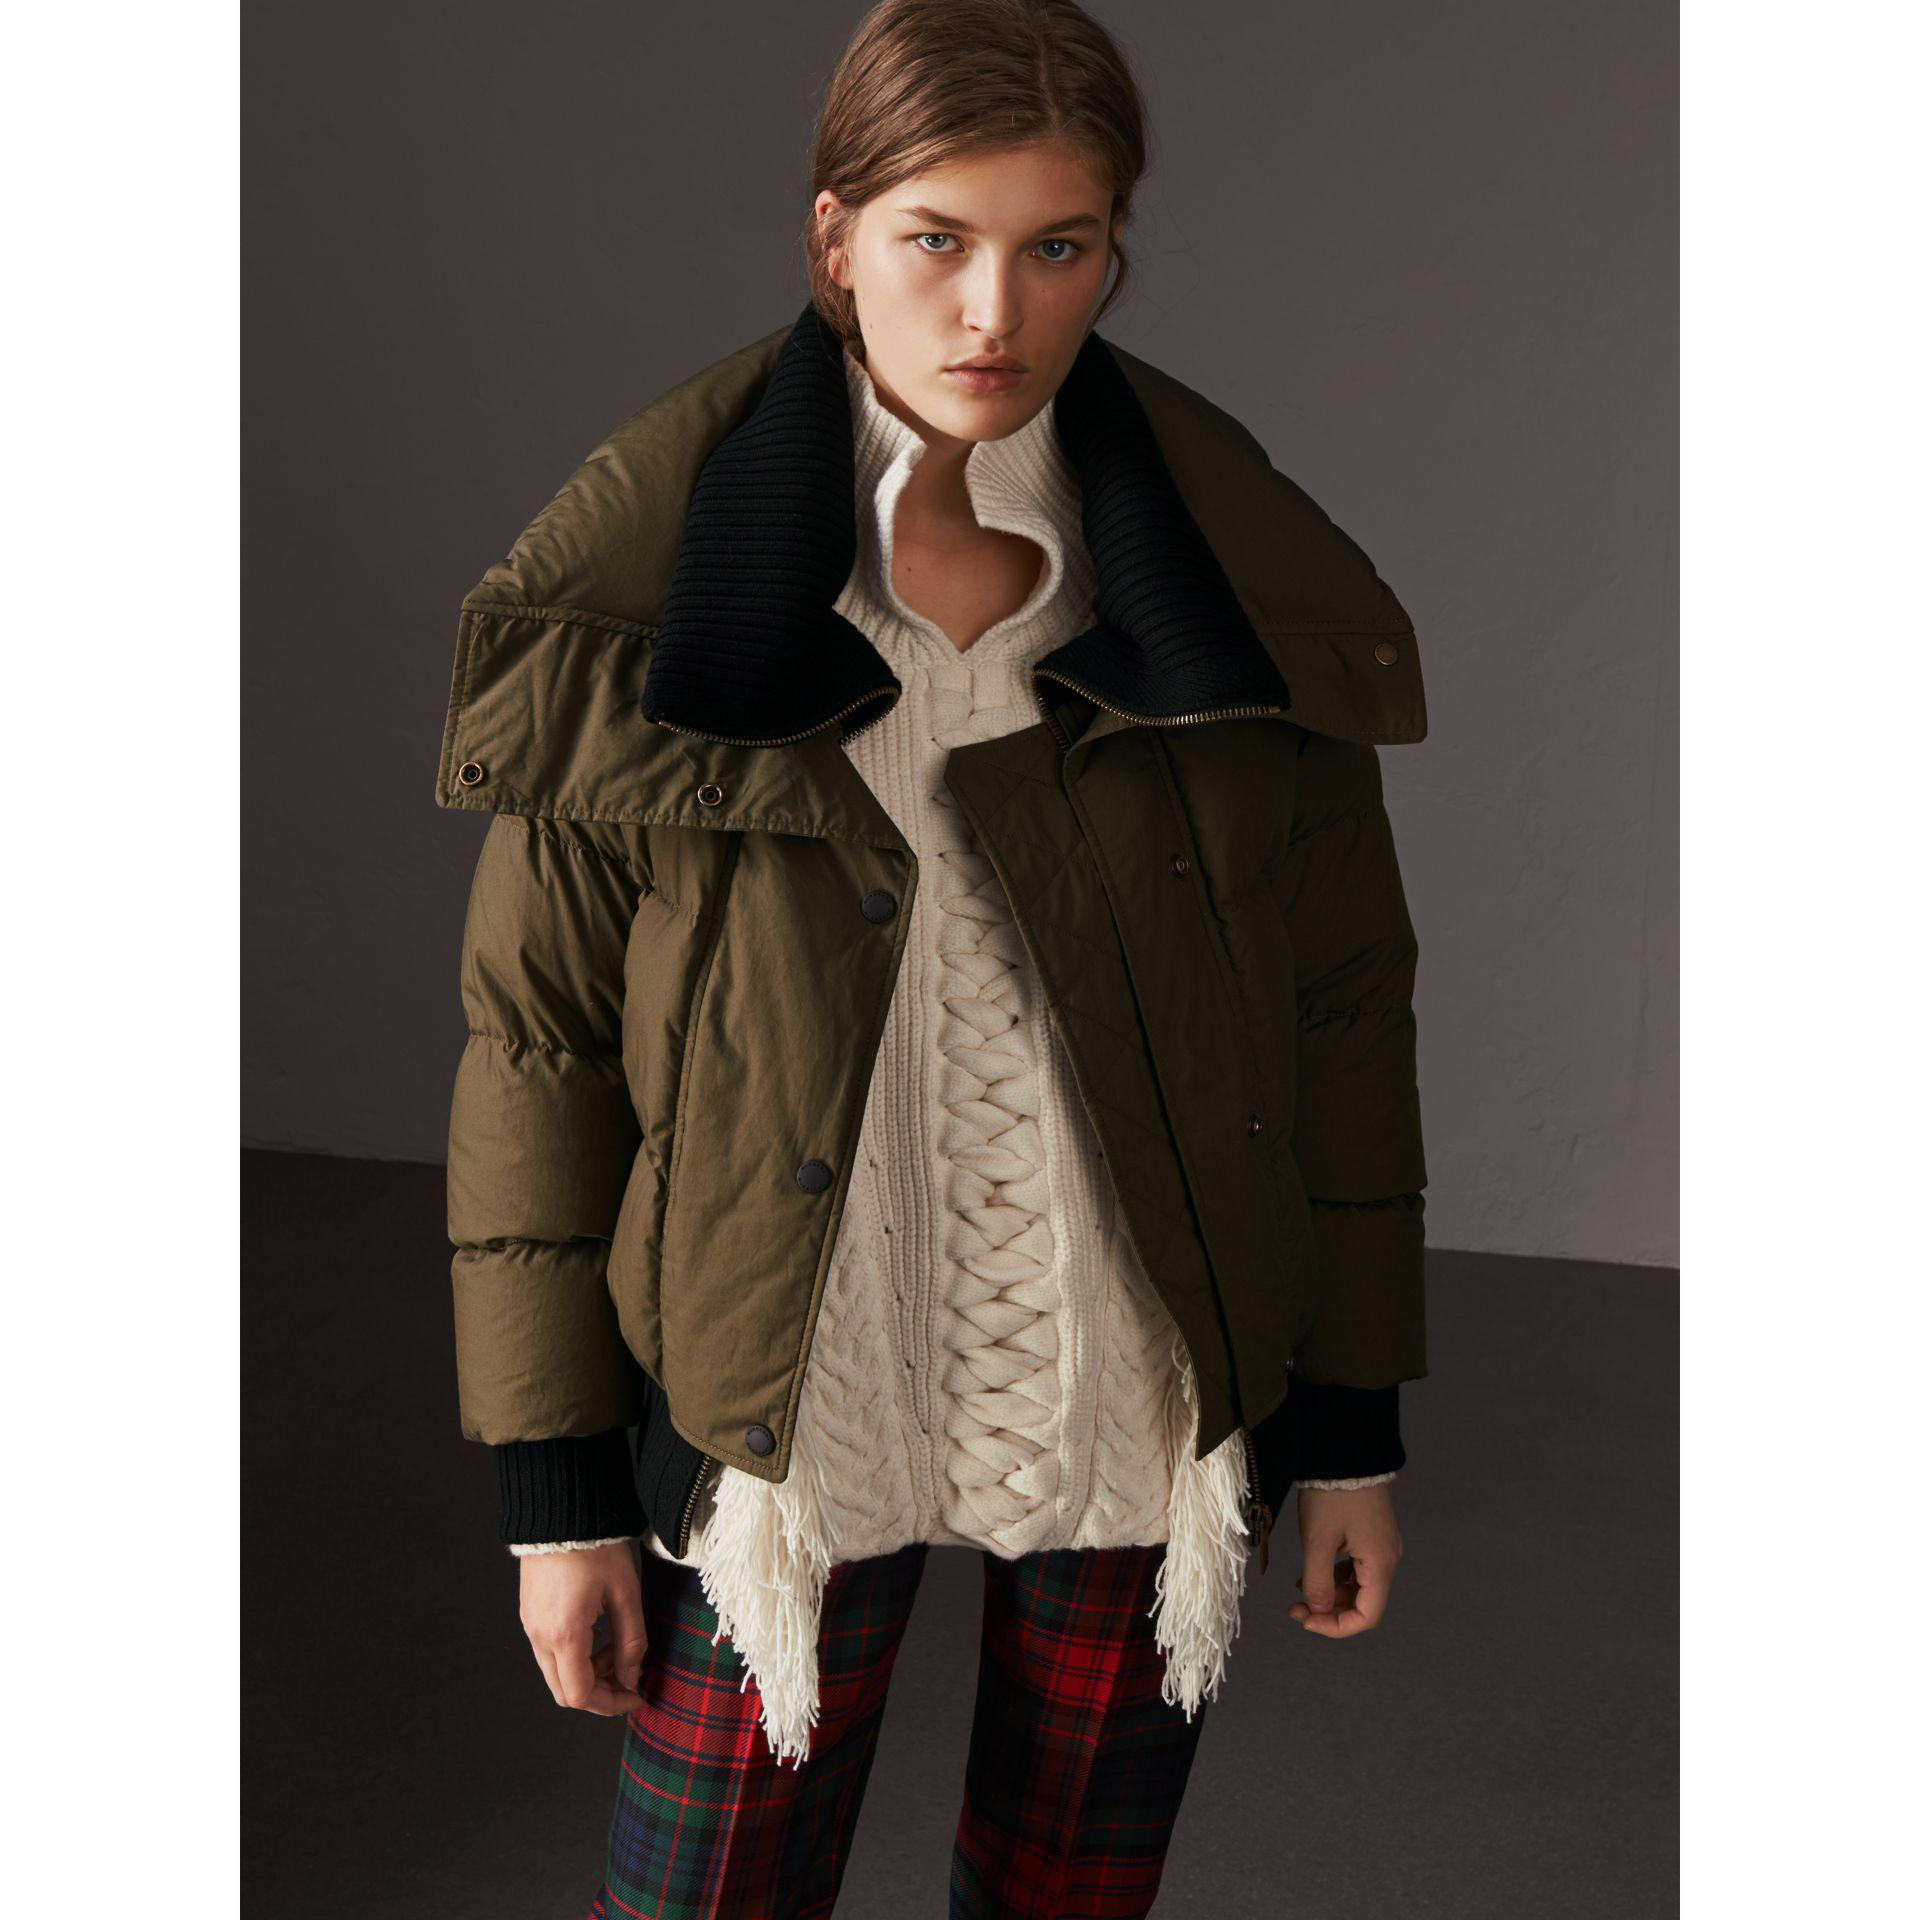 Burberry Oversized Rib Knit Collar Down-filled Bomber Jacket Cheap Limited Edition With Mastercard Cheap Online Original Cheap Online KXTSx2